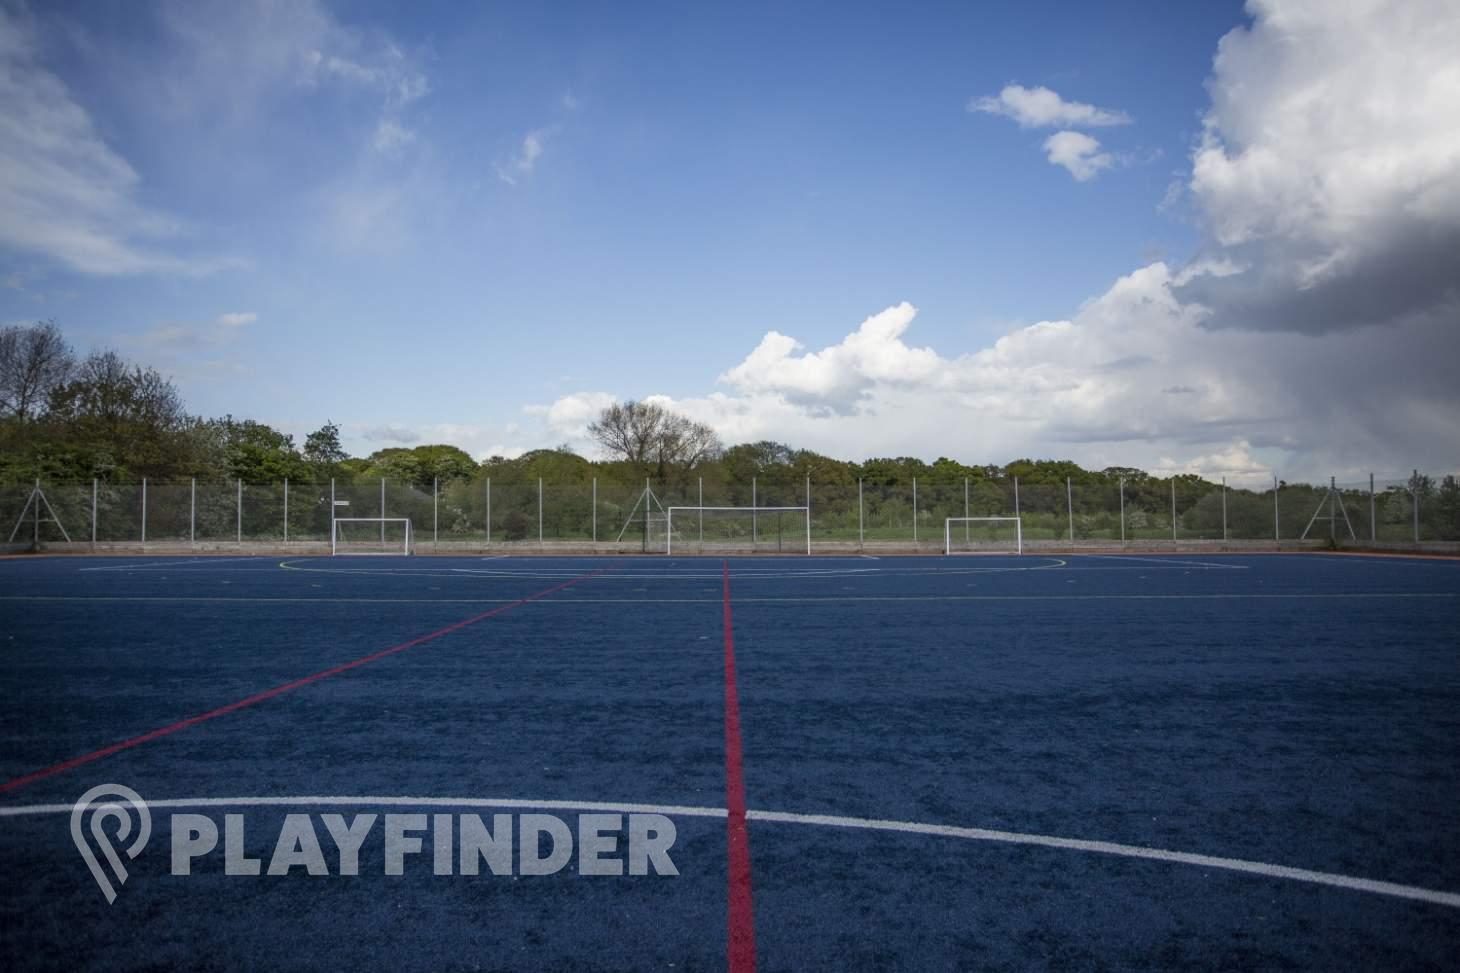 Powerleague Finchley 7 a side | 3G Astroturf football pitch